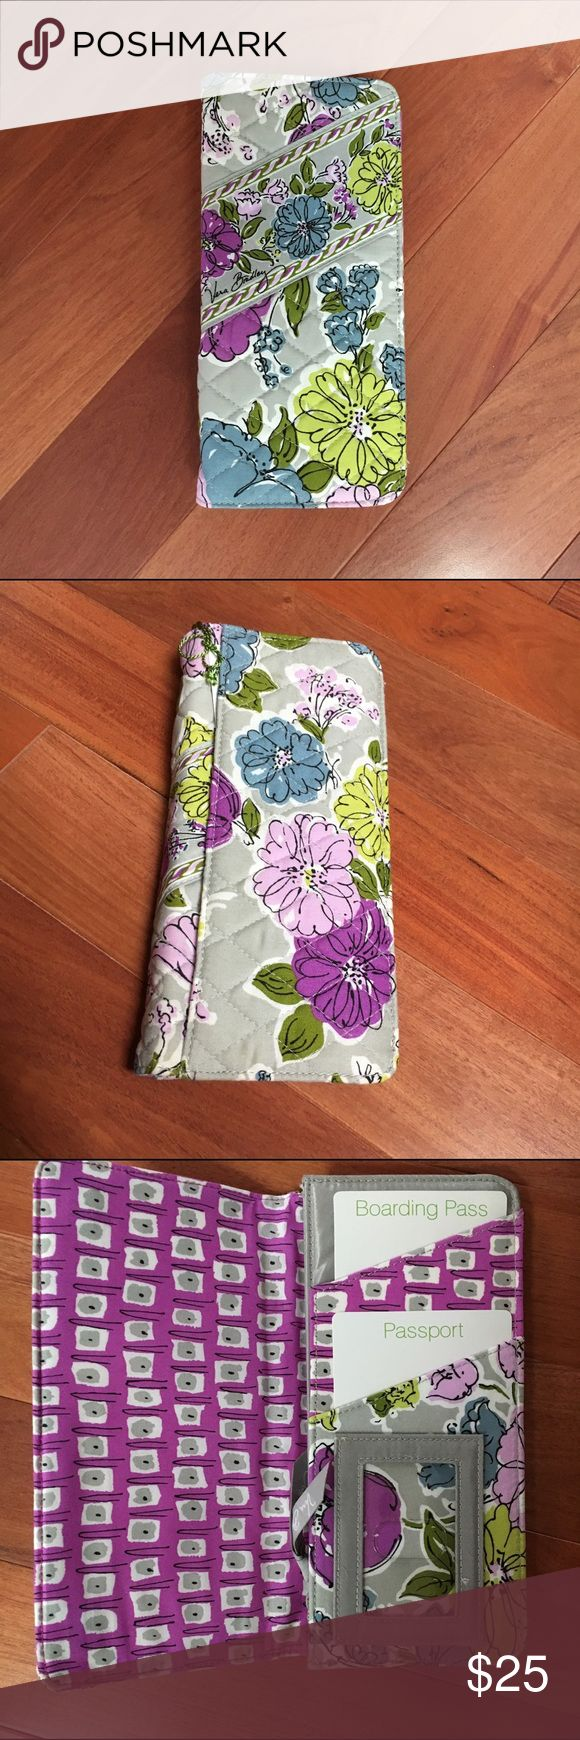 Vera Bradley Travel Wallet Vera Bradley Travel Wallet in Watercolor. Inside has a spot for your ID, passport and boarding pass. Also has spot for cash and other important documents. Magnetic close Vera Bradley Bags Travel Bags